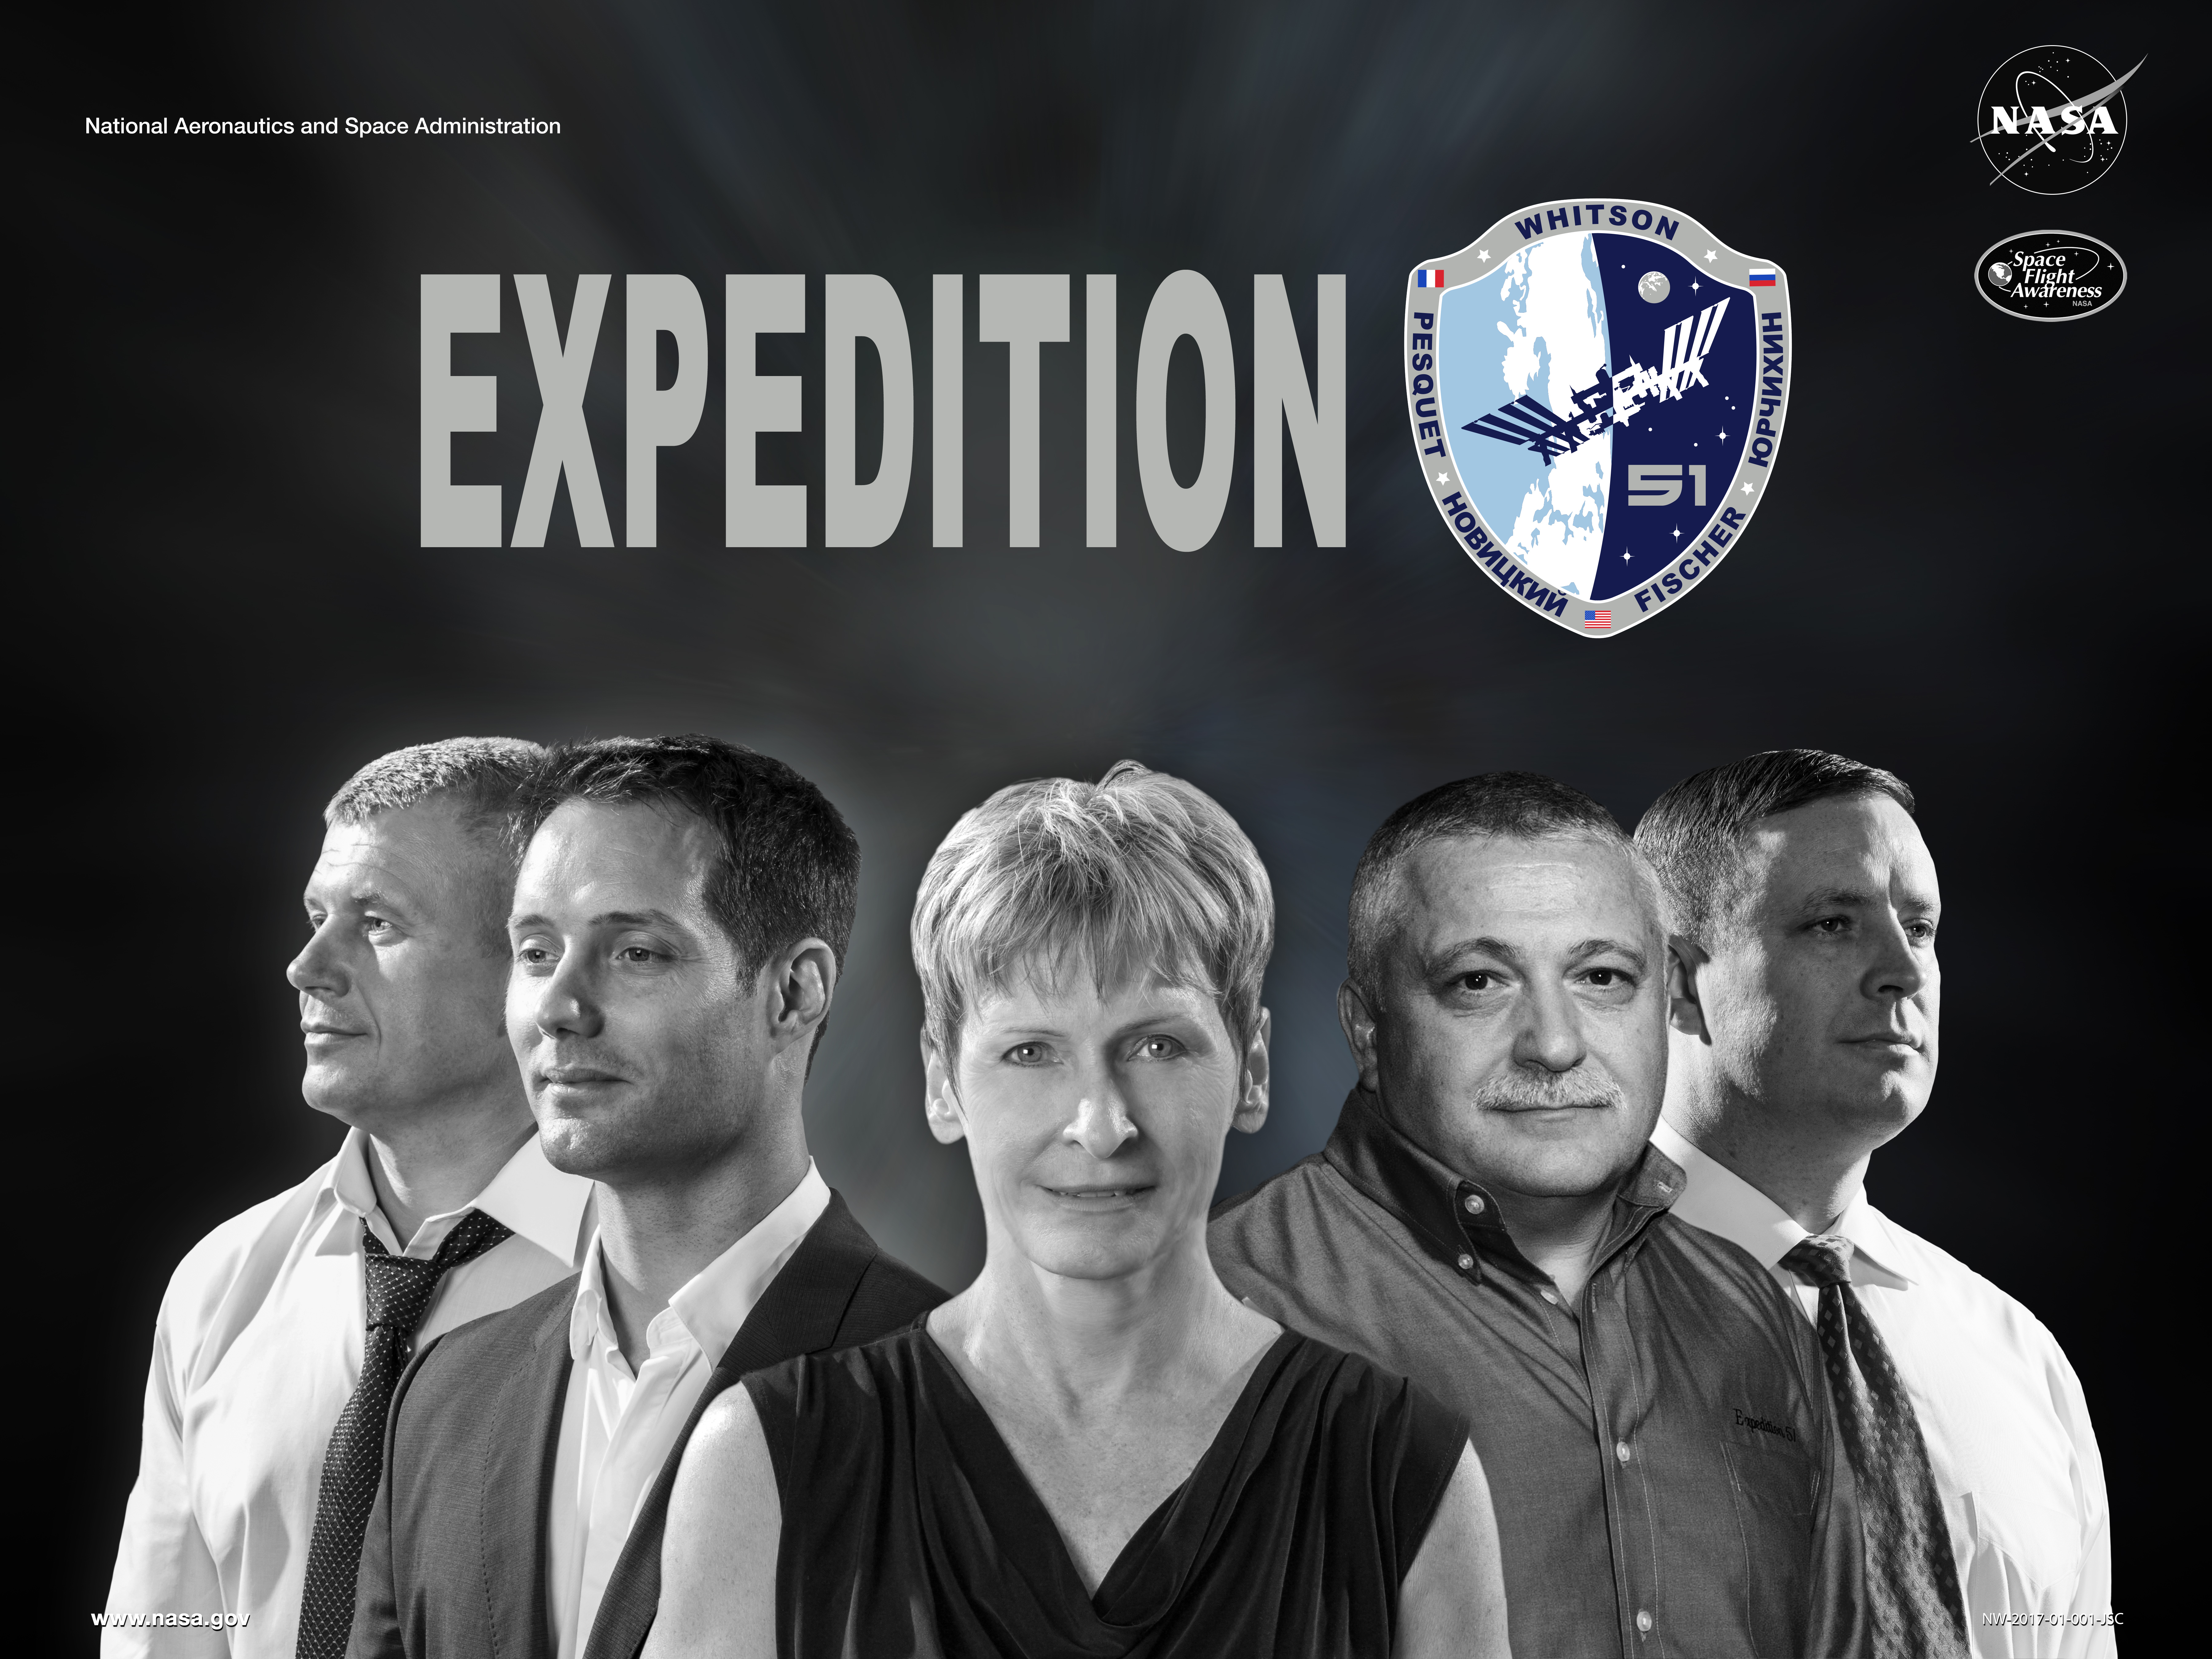 File Expedition 51 crew poster.jpg - Wikimedia Commons 399e4dae59